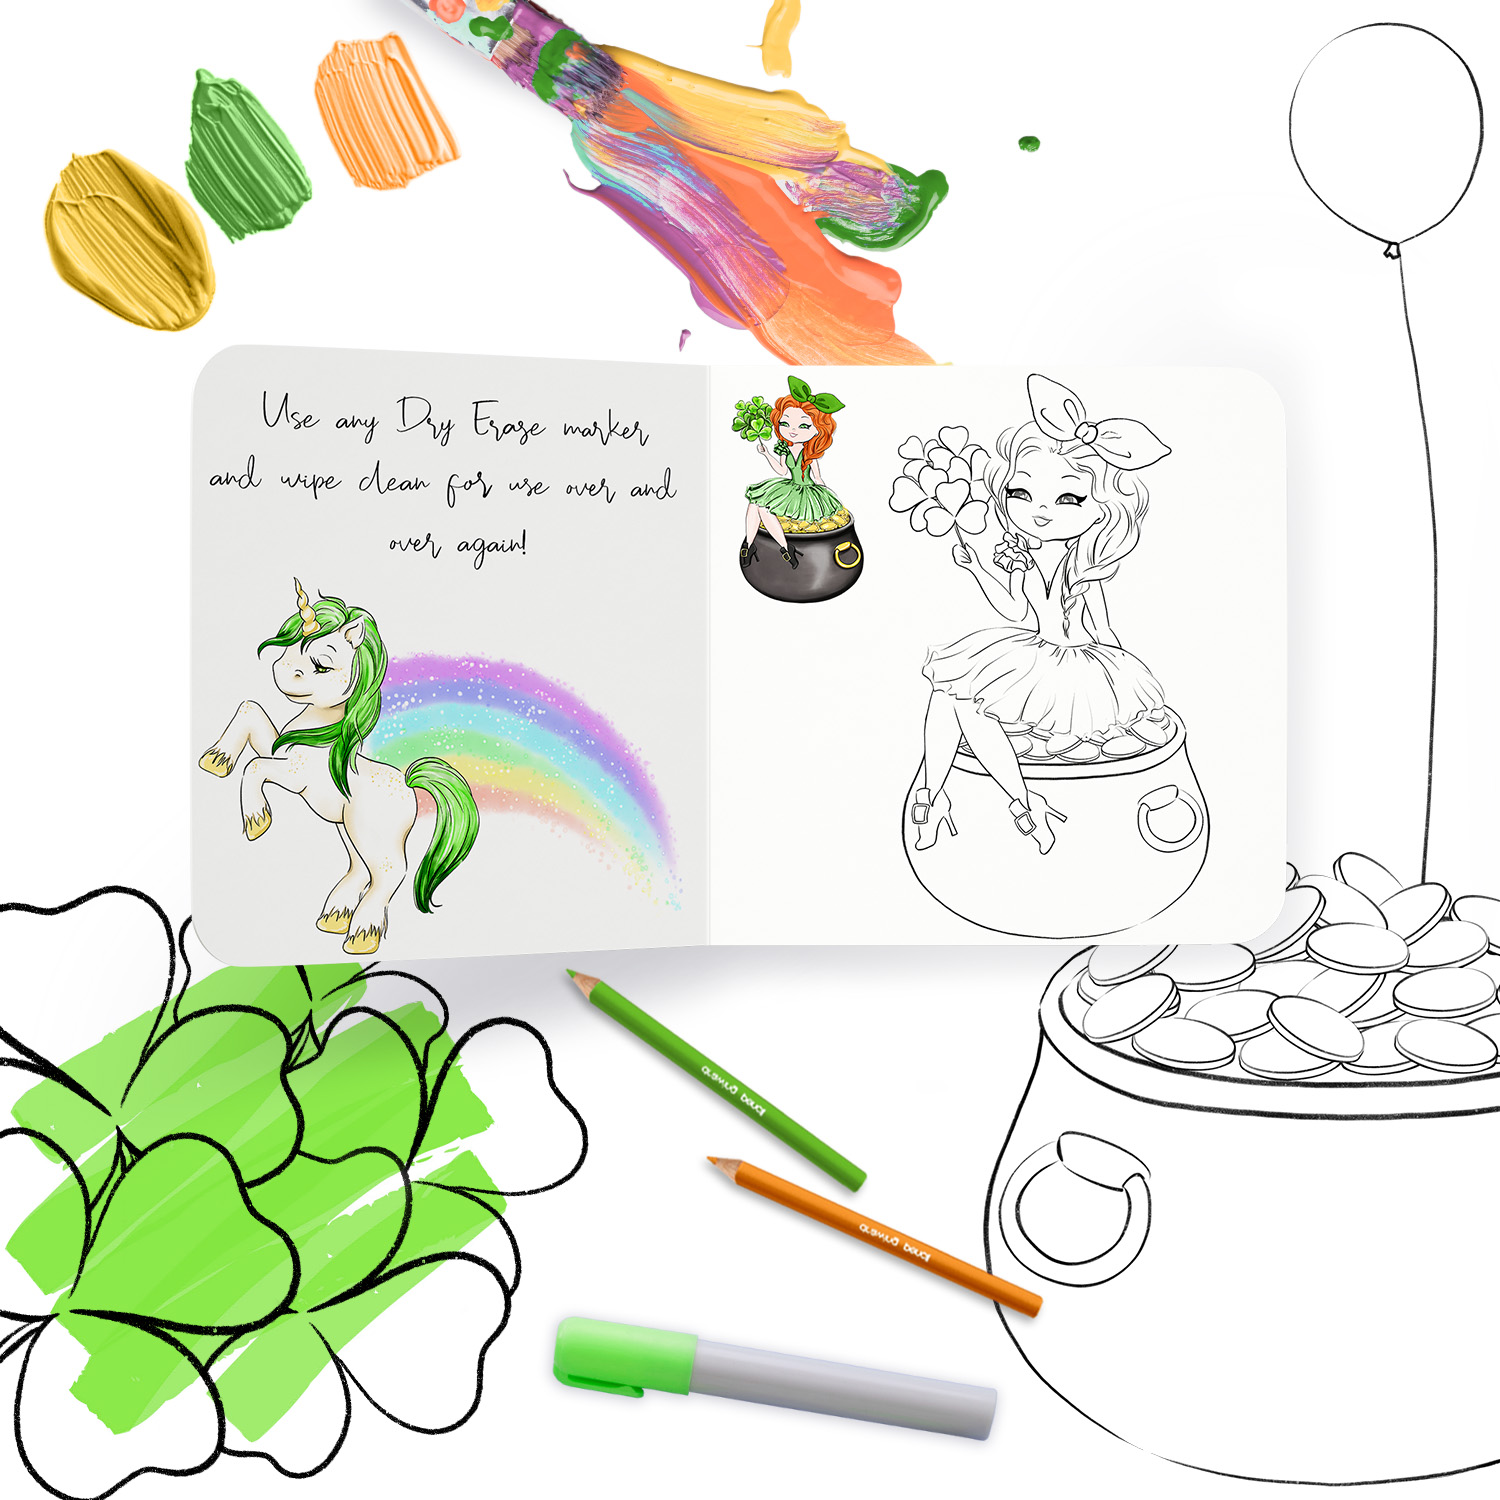 Its Your Lucky Day - Clipart example image 8